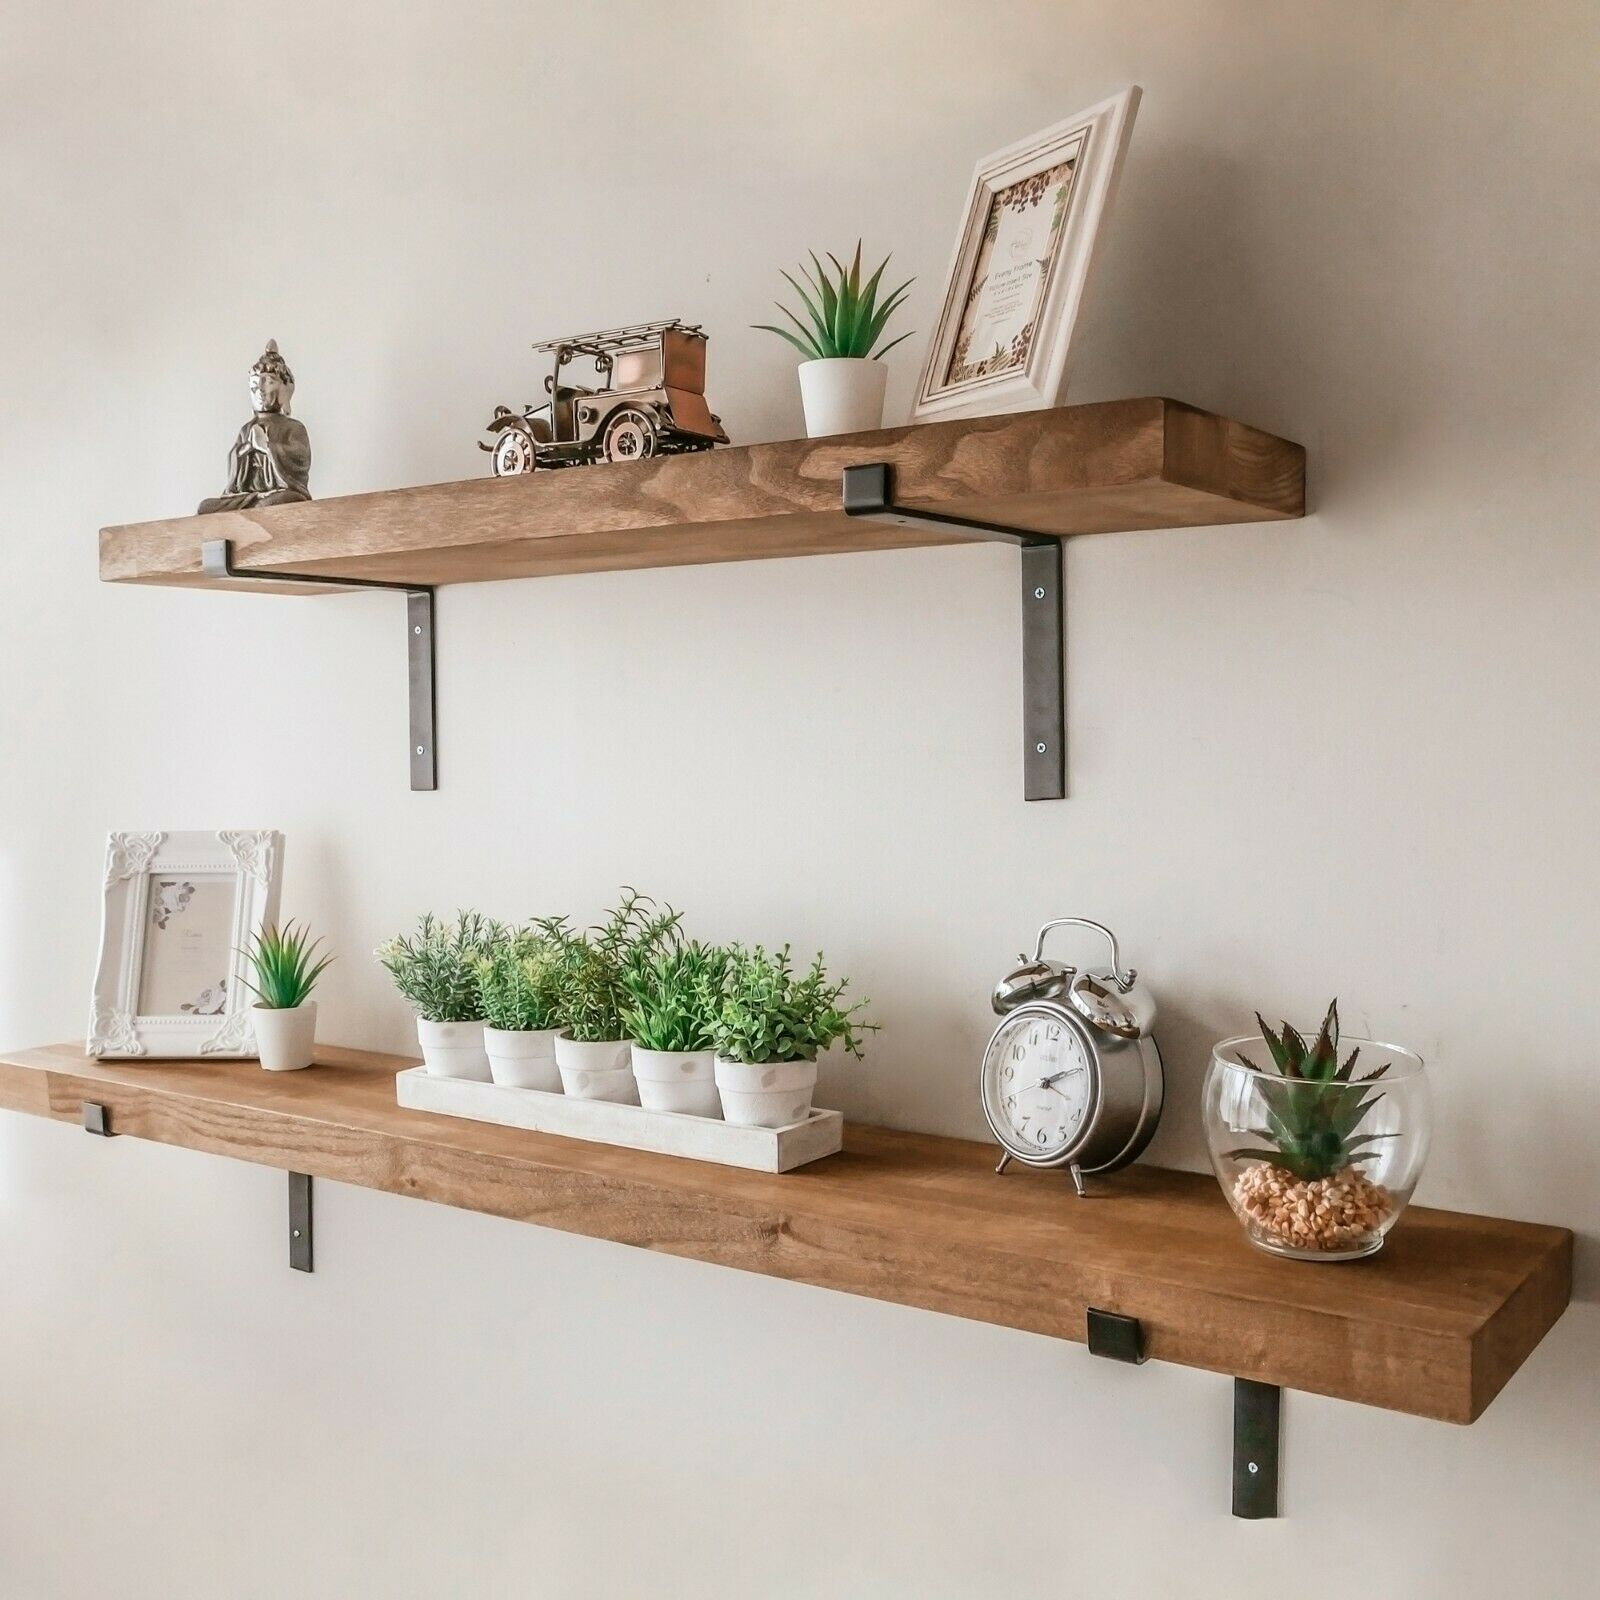 Rustic OAK Floating Shelves – Identify The Truth About Them